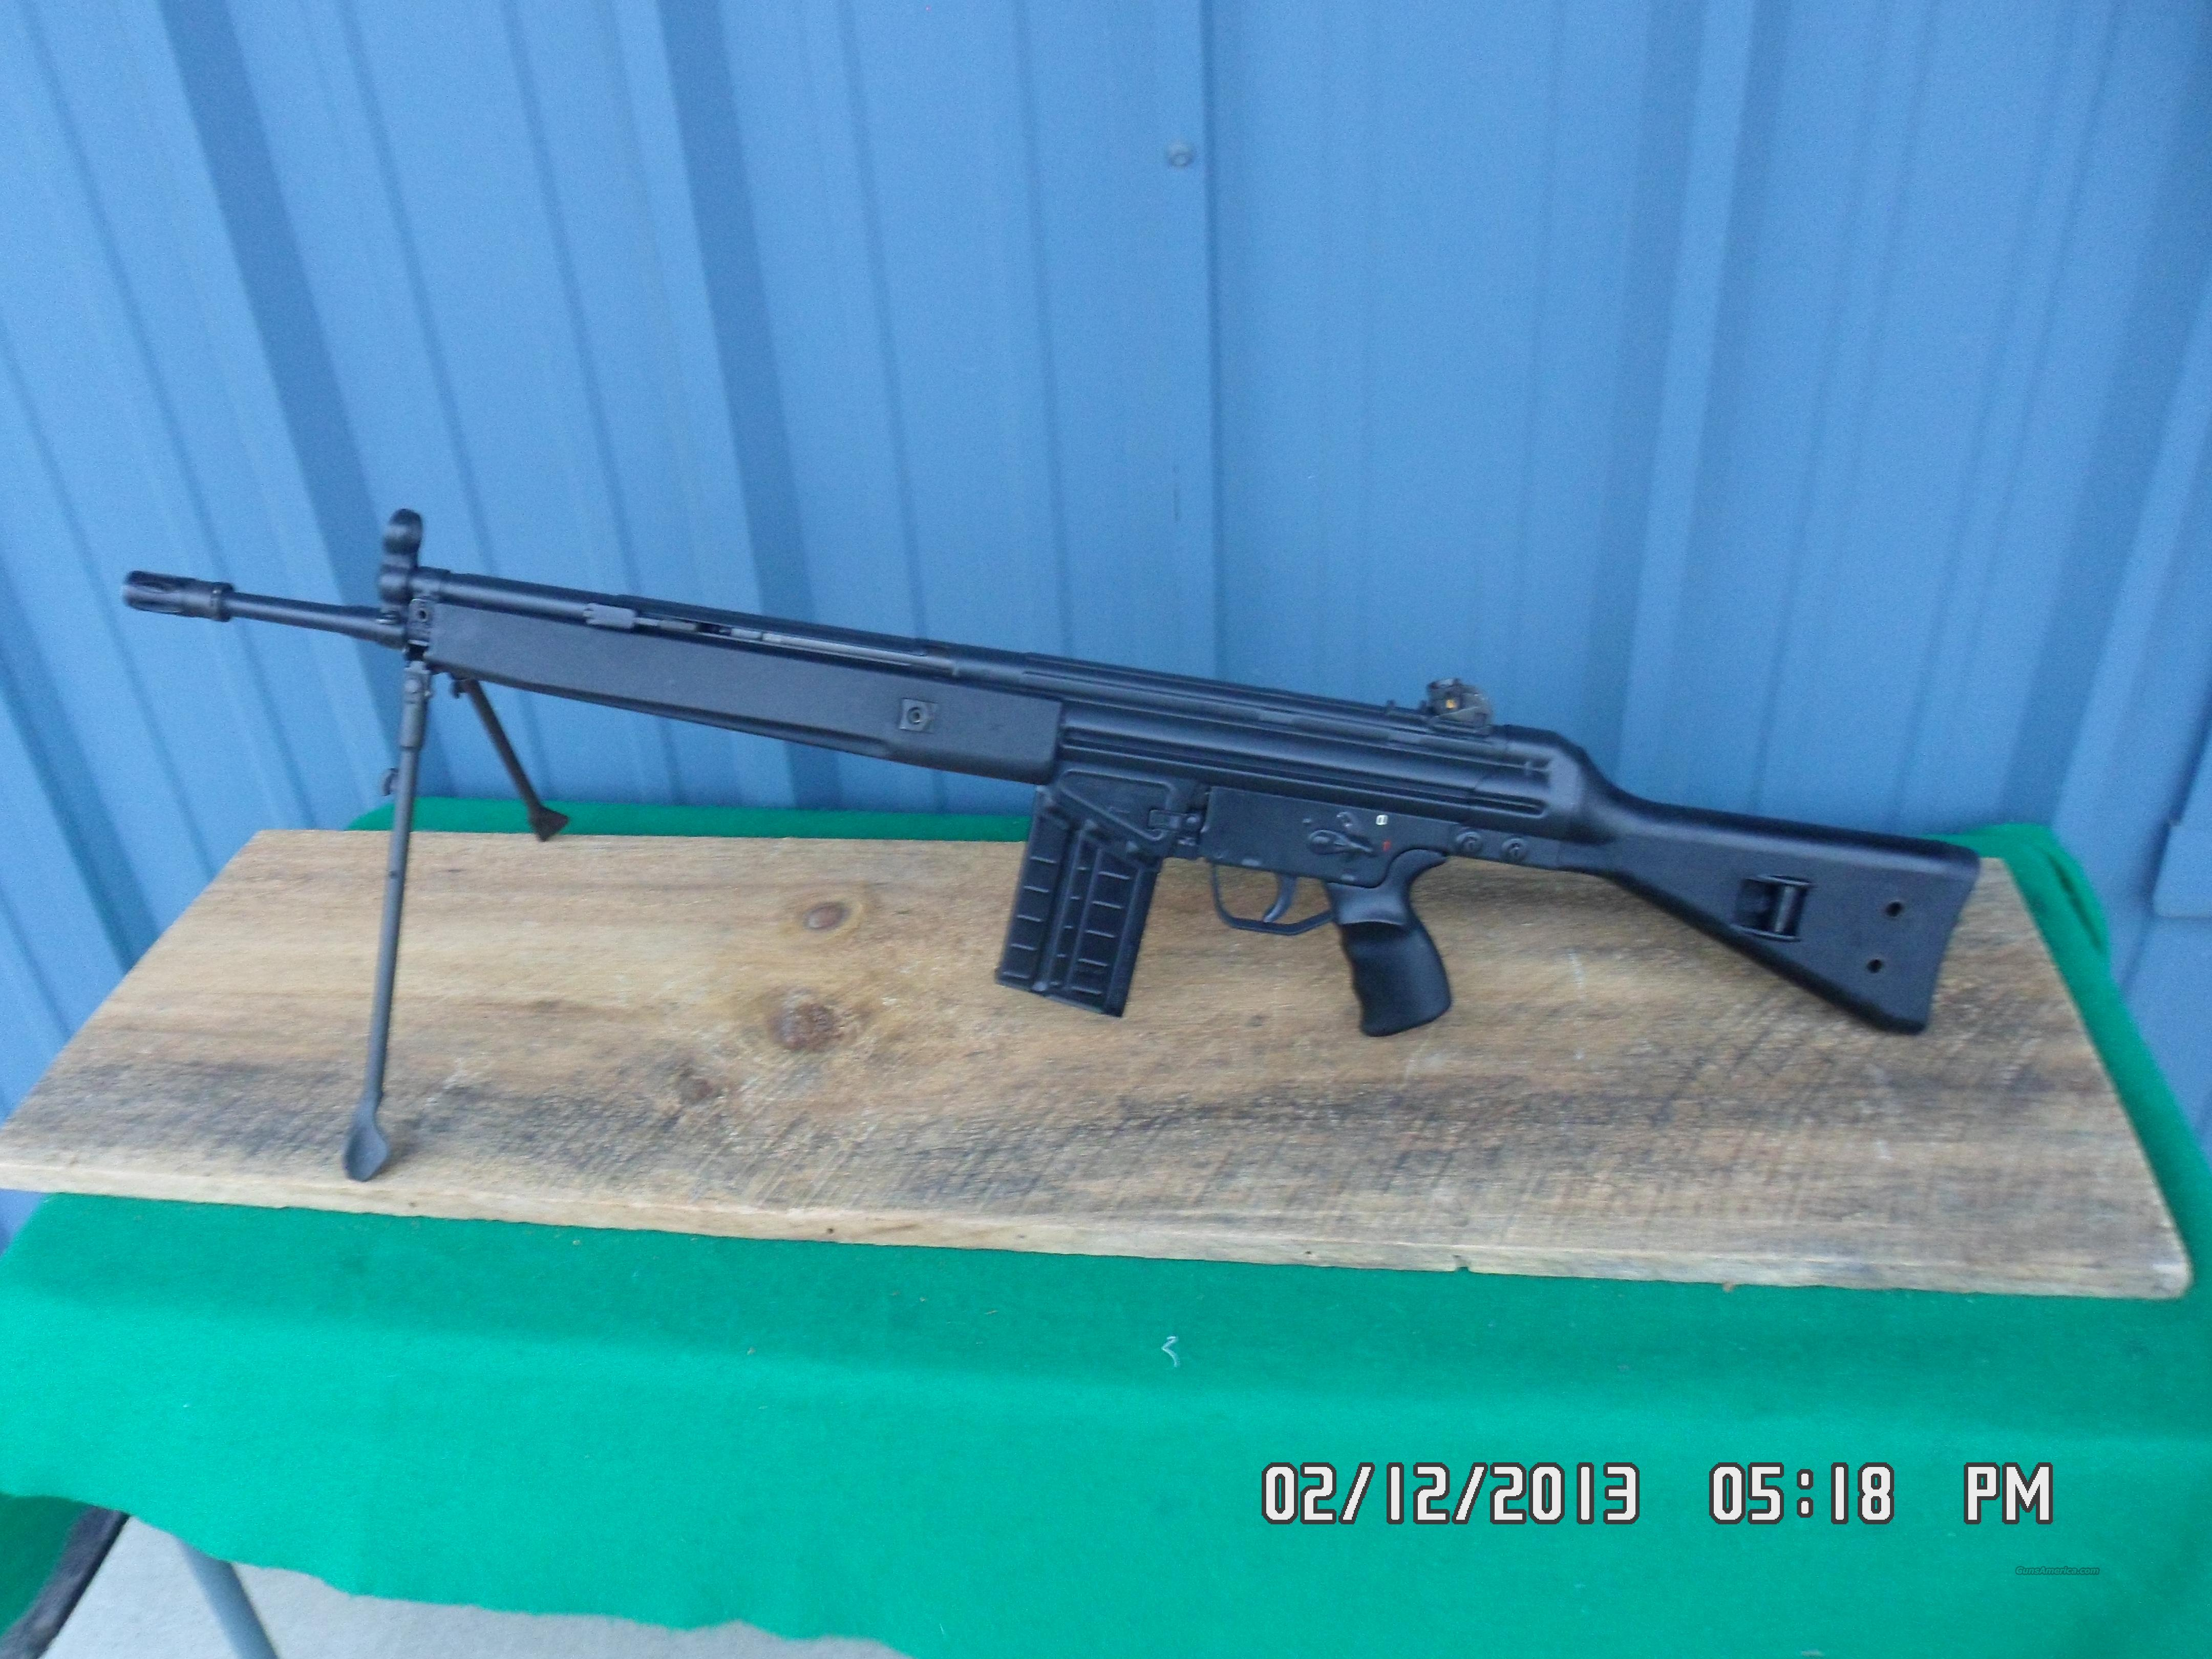 H & K MODEL 91 - A2 SEMI-AUTO MILITARY RIFLE,308 CALIBER,99% FACTORY CONDITION!  Guns > Rifles > Heckler & Koch Rifles > Tactical